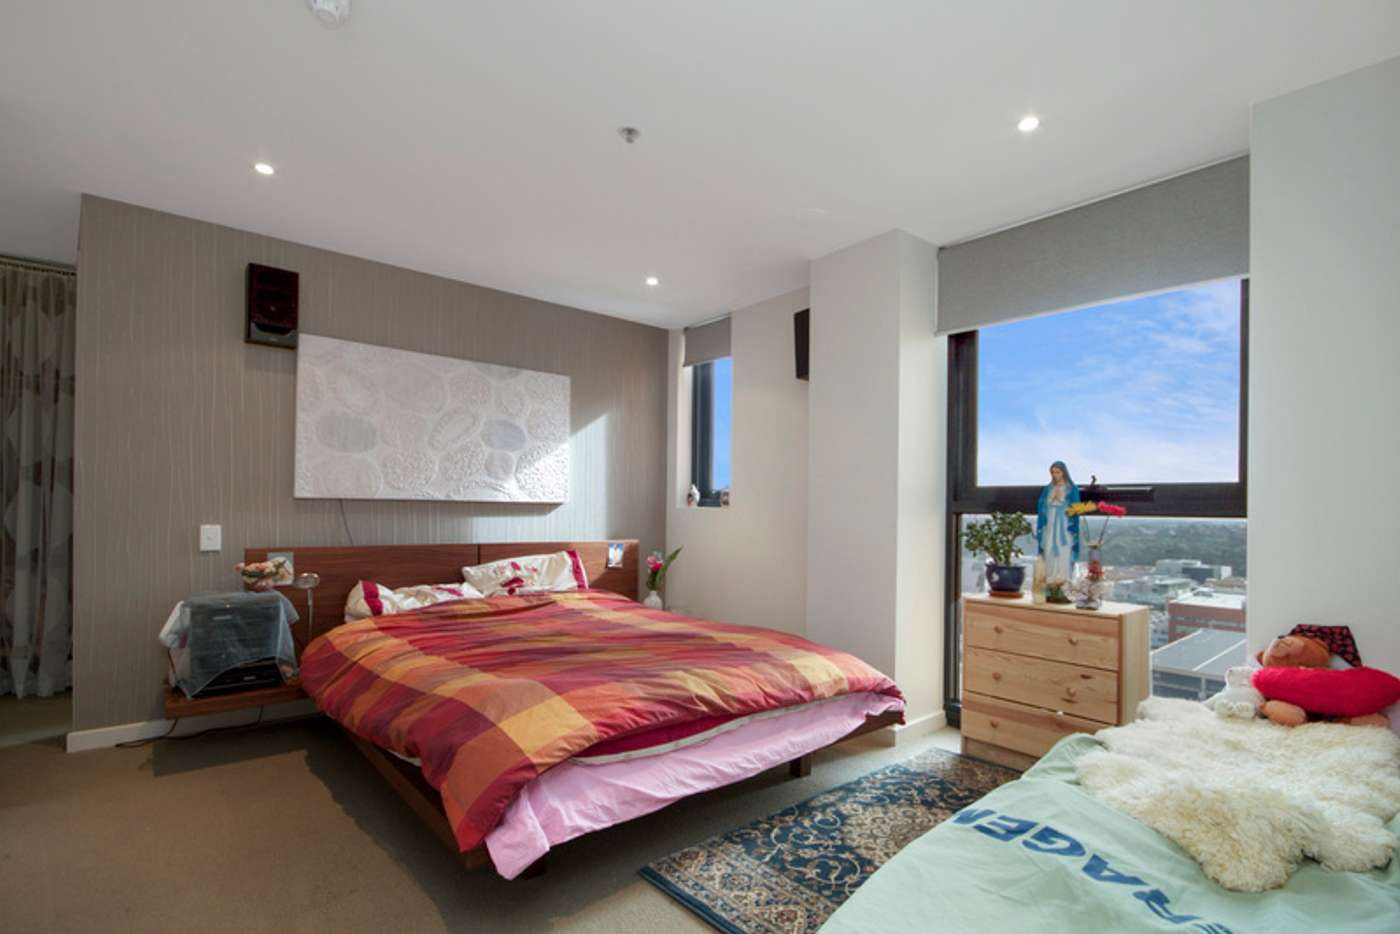 Fifth view of Homely apartment listing, 1701, 10 Balfours Way, Adelaide SA 5000